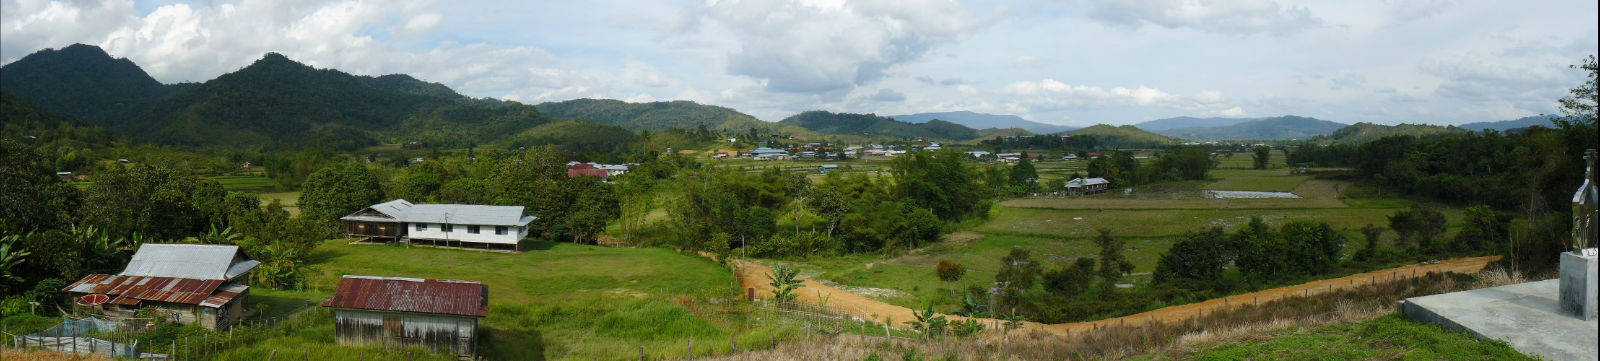 Borneo Malese, Bario, Kelabit Highlands